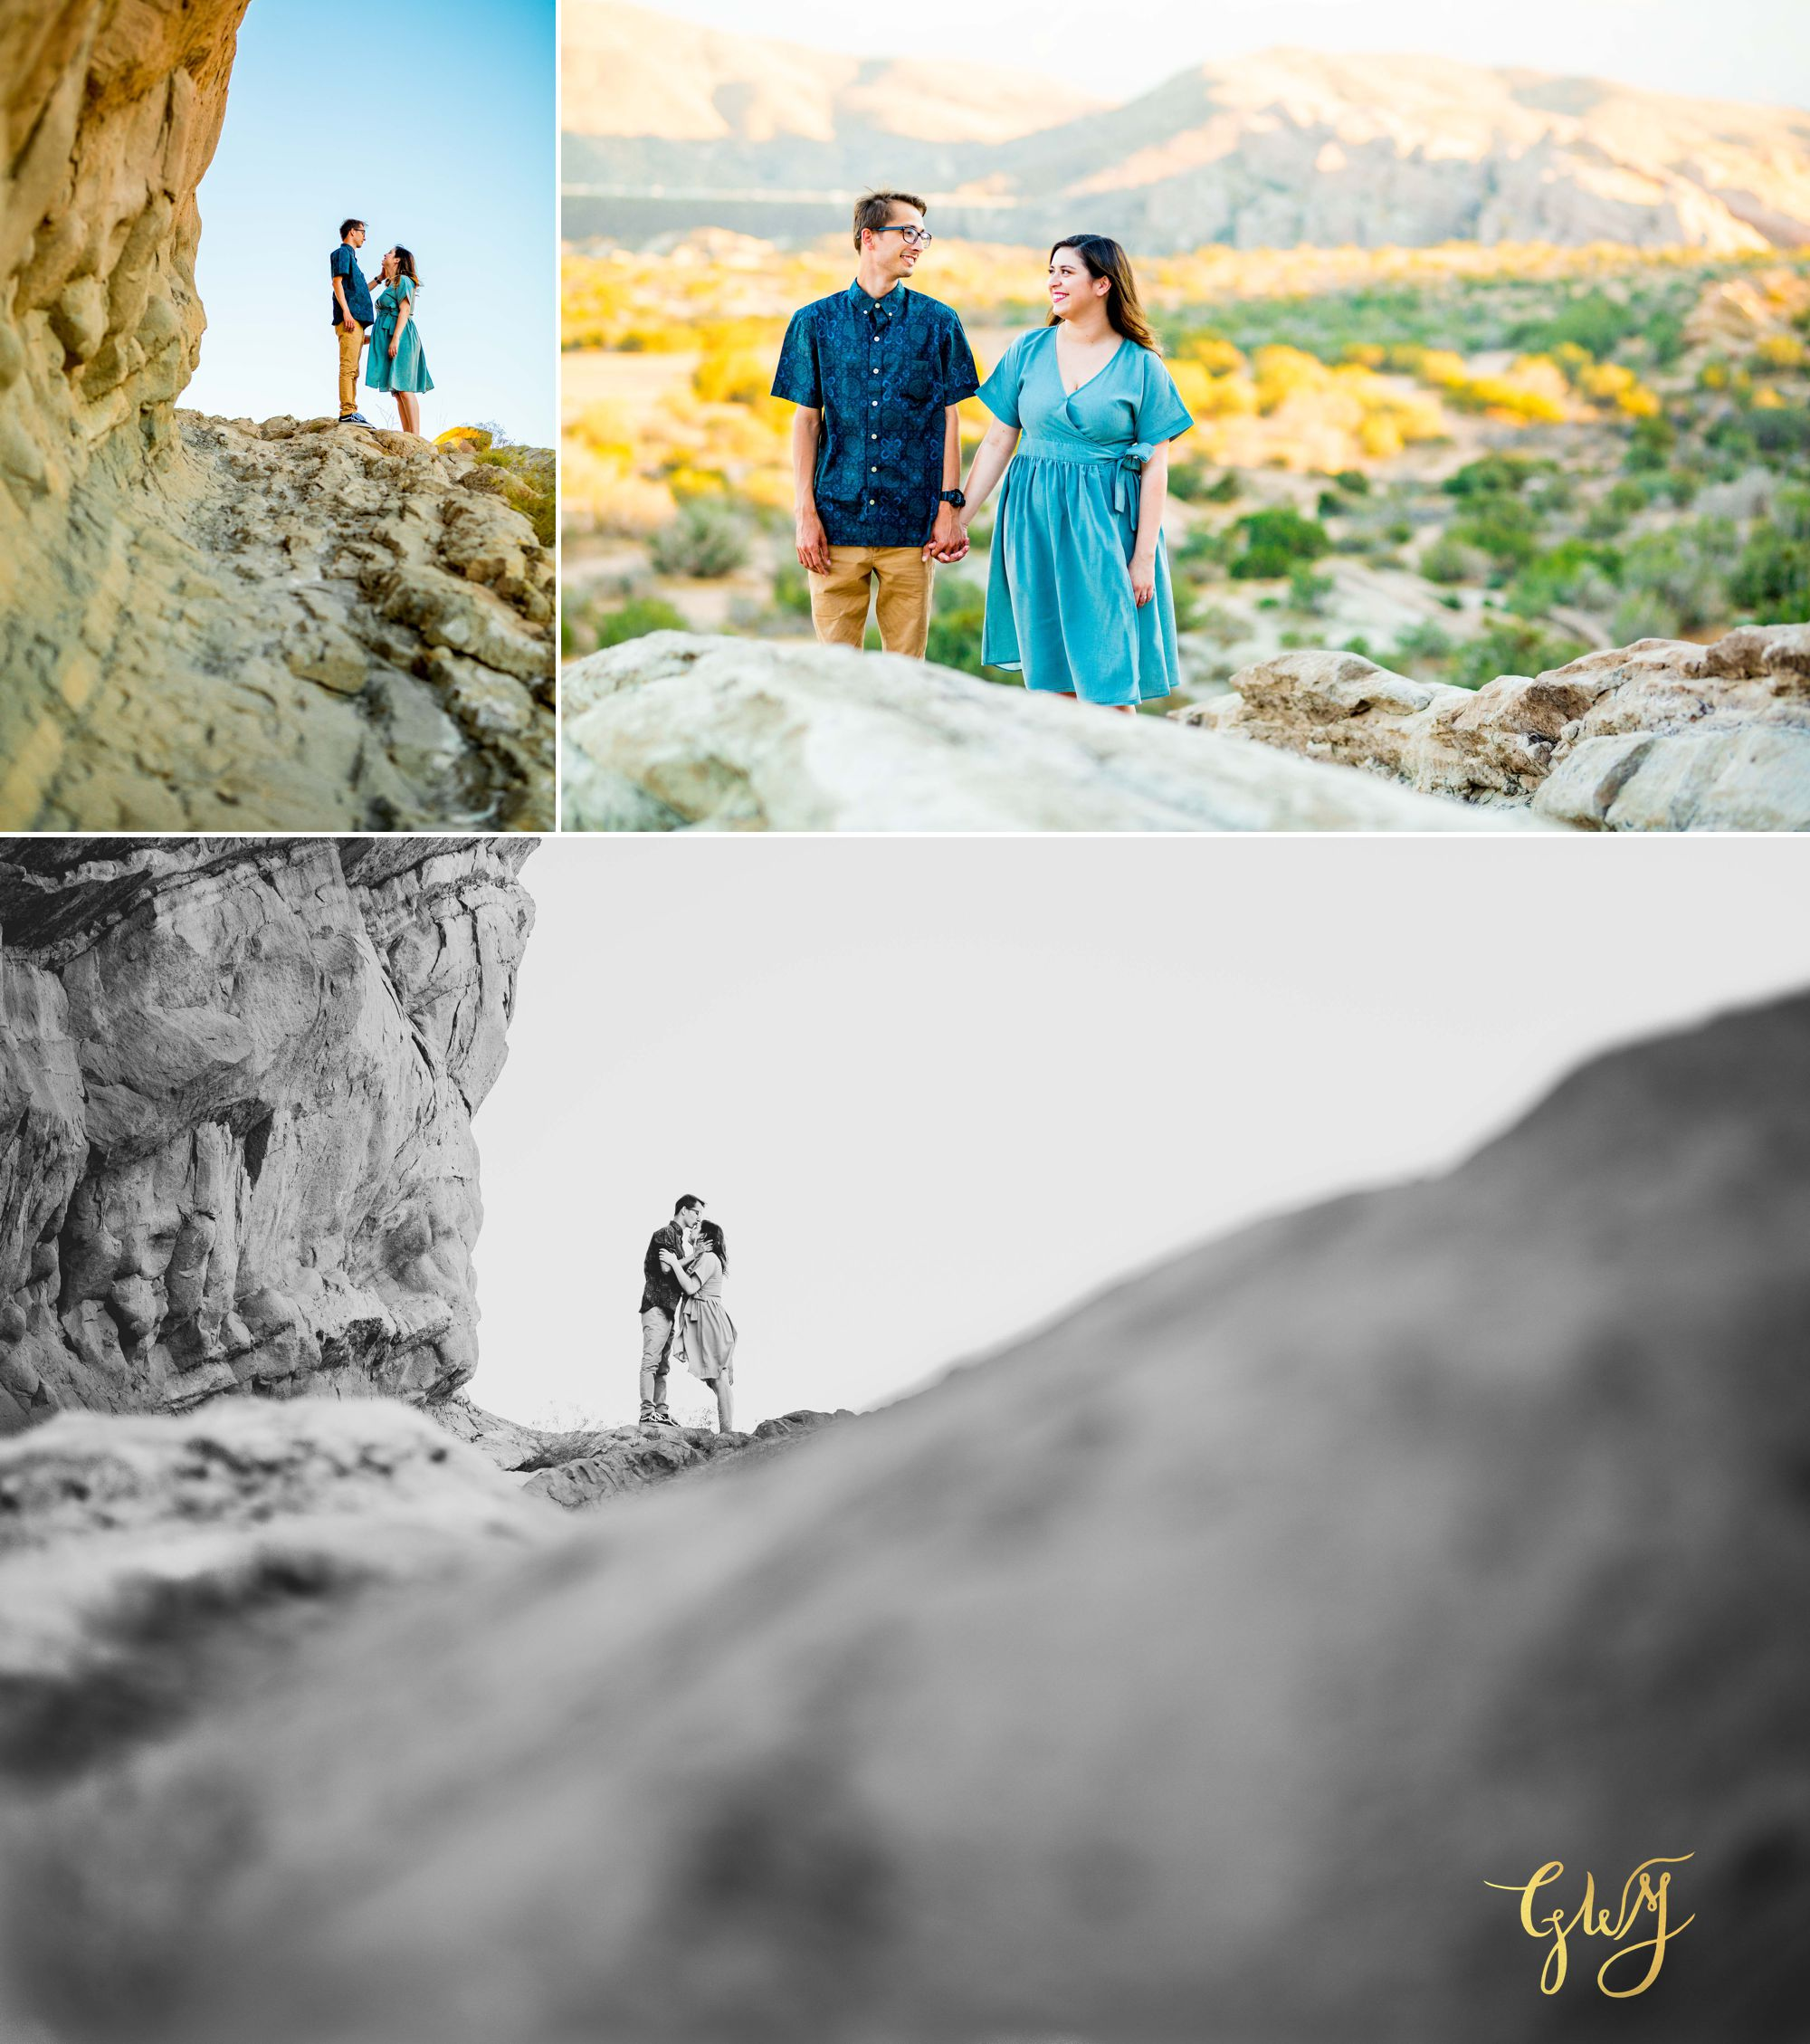 KJ + Maddie Vasquez Rocks Adventurous Hiking Outdoors Engagement Session by Glass Woods Media 7.jpg